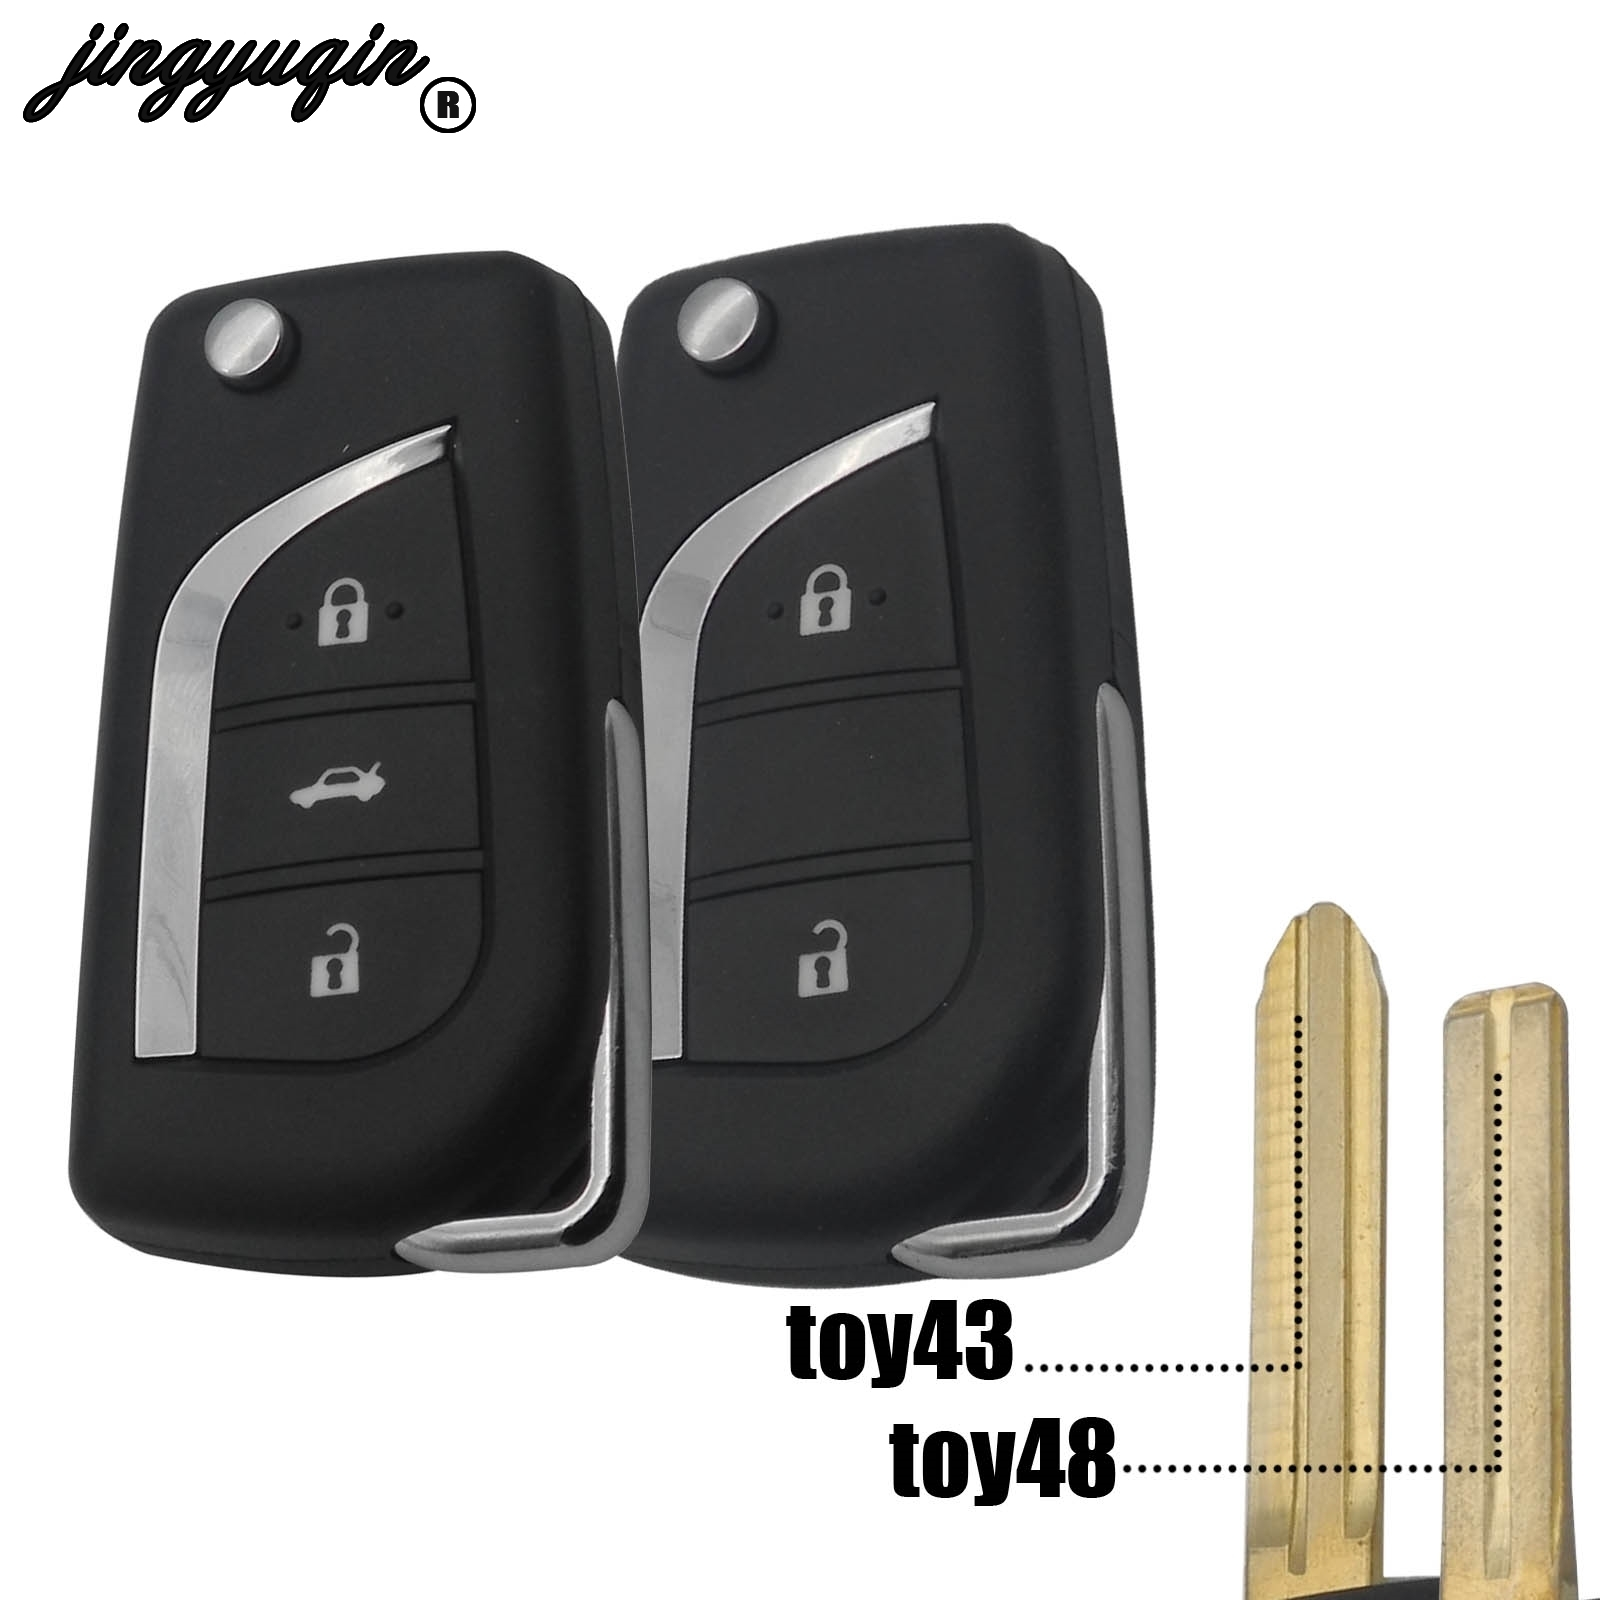 jingyuqin 2/3 Button Remote Flip Folding Car <font><b>Key</b></font> Shell <font><b>Case</b></font> For <font><b>Toyota</b></font> <font><b>2014</b></font> <font><b>RAV4</b></font> Levin Camry Reiz Highlander Corolla Yaris image